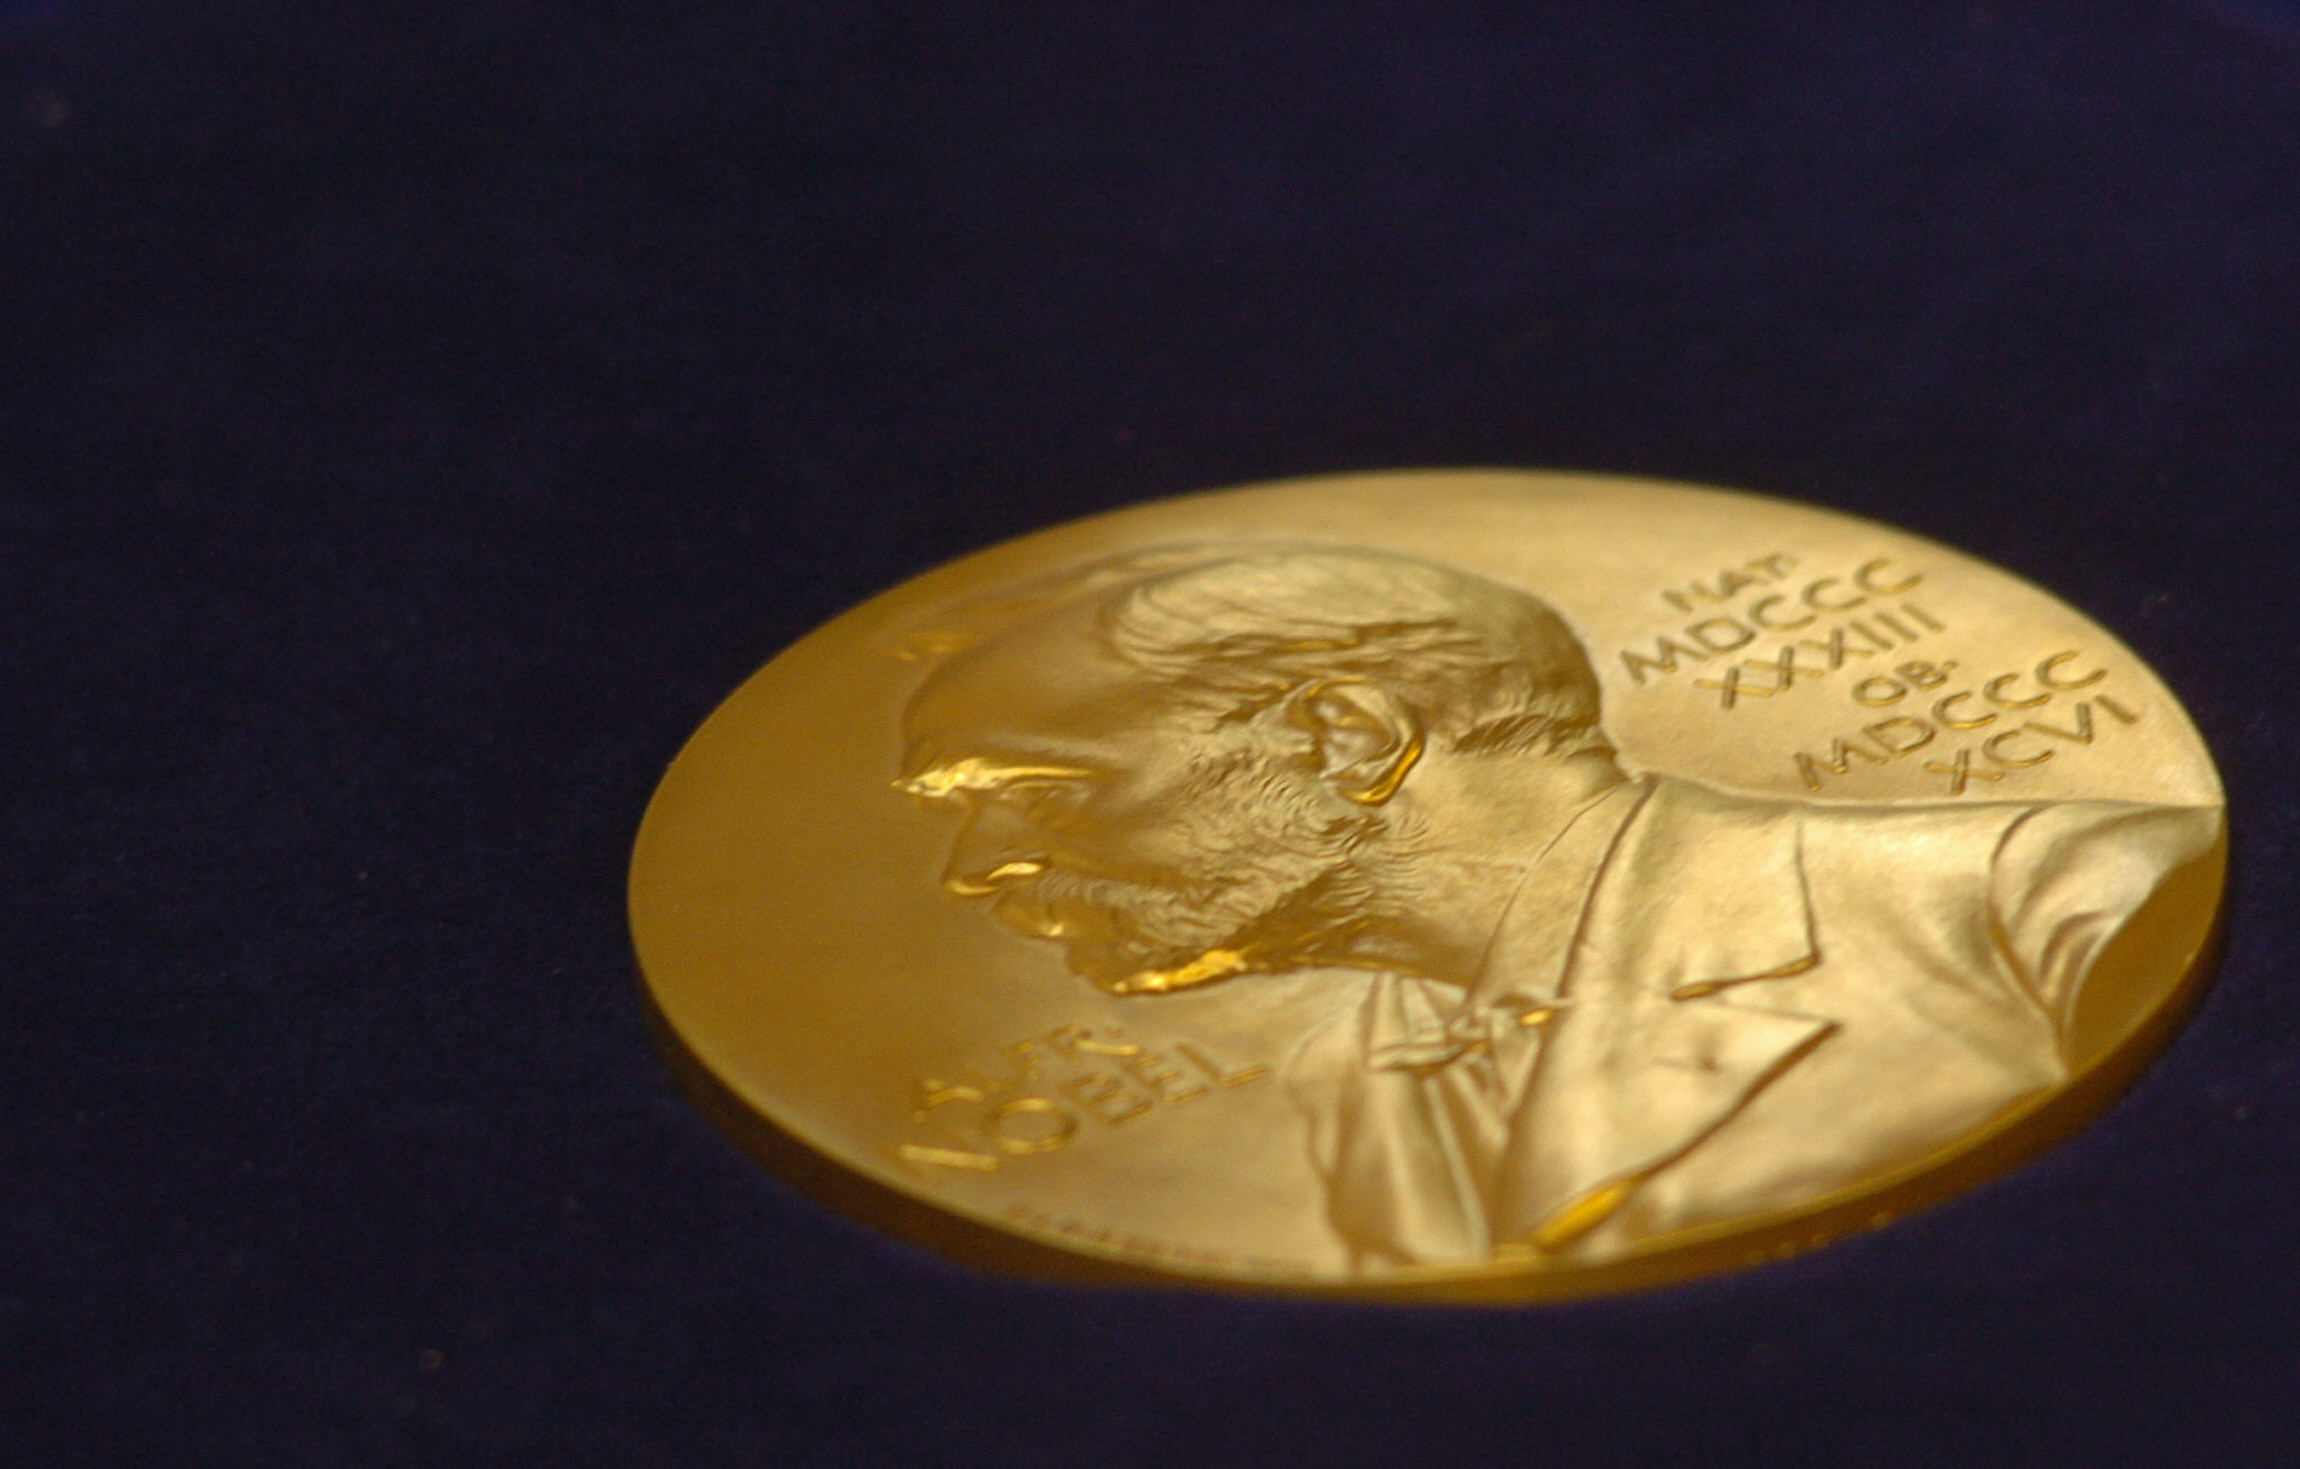 The gold replica of the Nobel medal is o